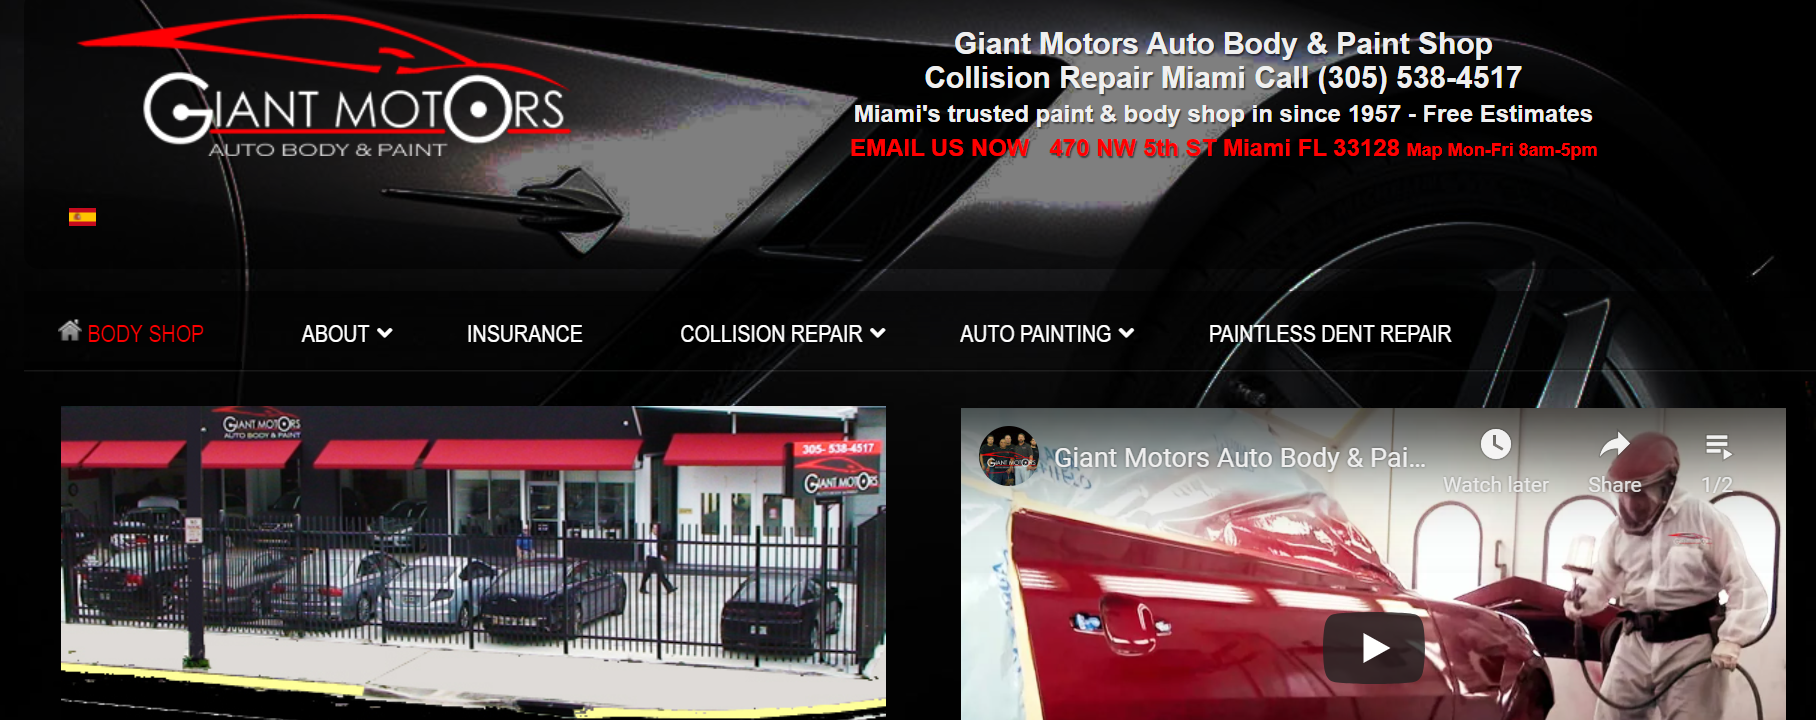 Giant Motor Auto Body and Paint in Miami